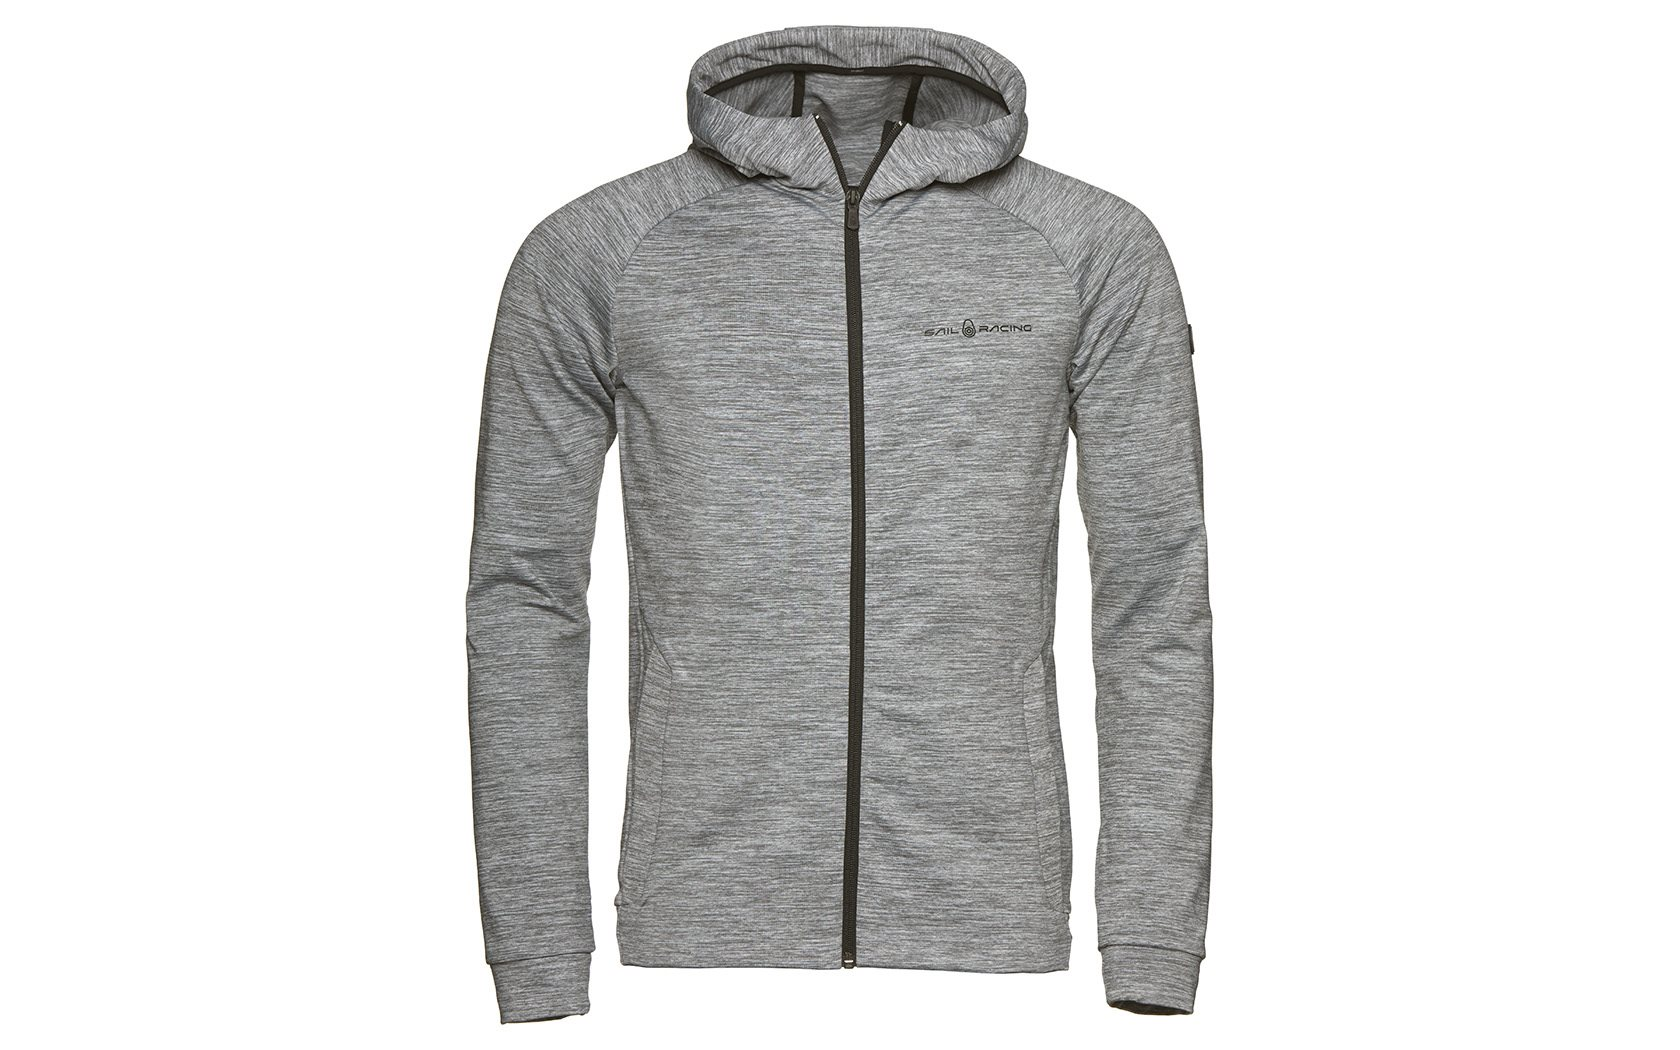 BOWMAN FLEECE HOOD